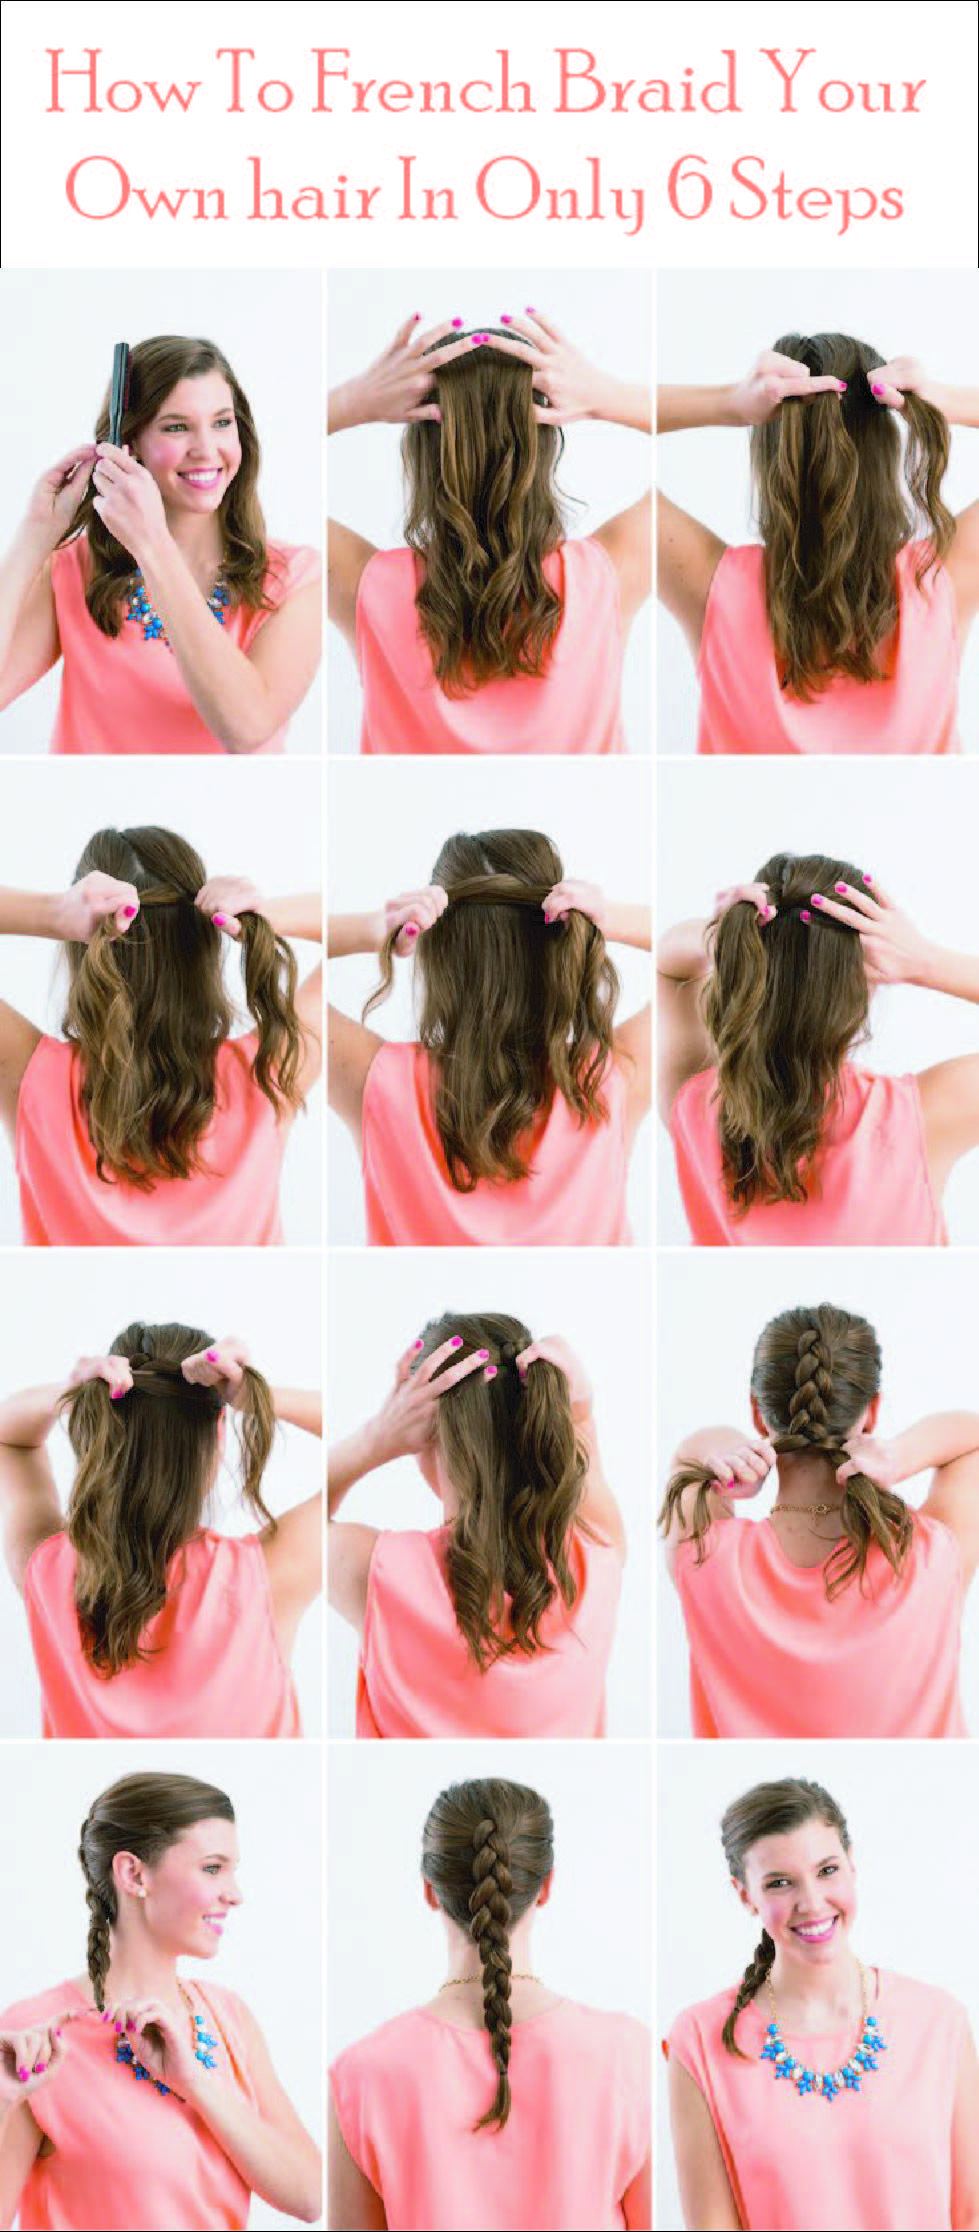 Fancy French Braids Want To Know How To French Braid Your Hair French Braids Are Very E Braided Hairstyles Easy French Braid Short Hair Braids For Short Hair